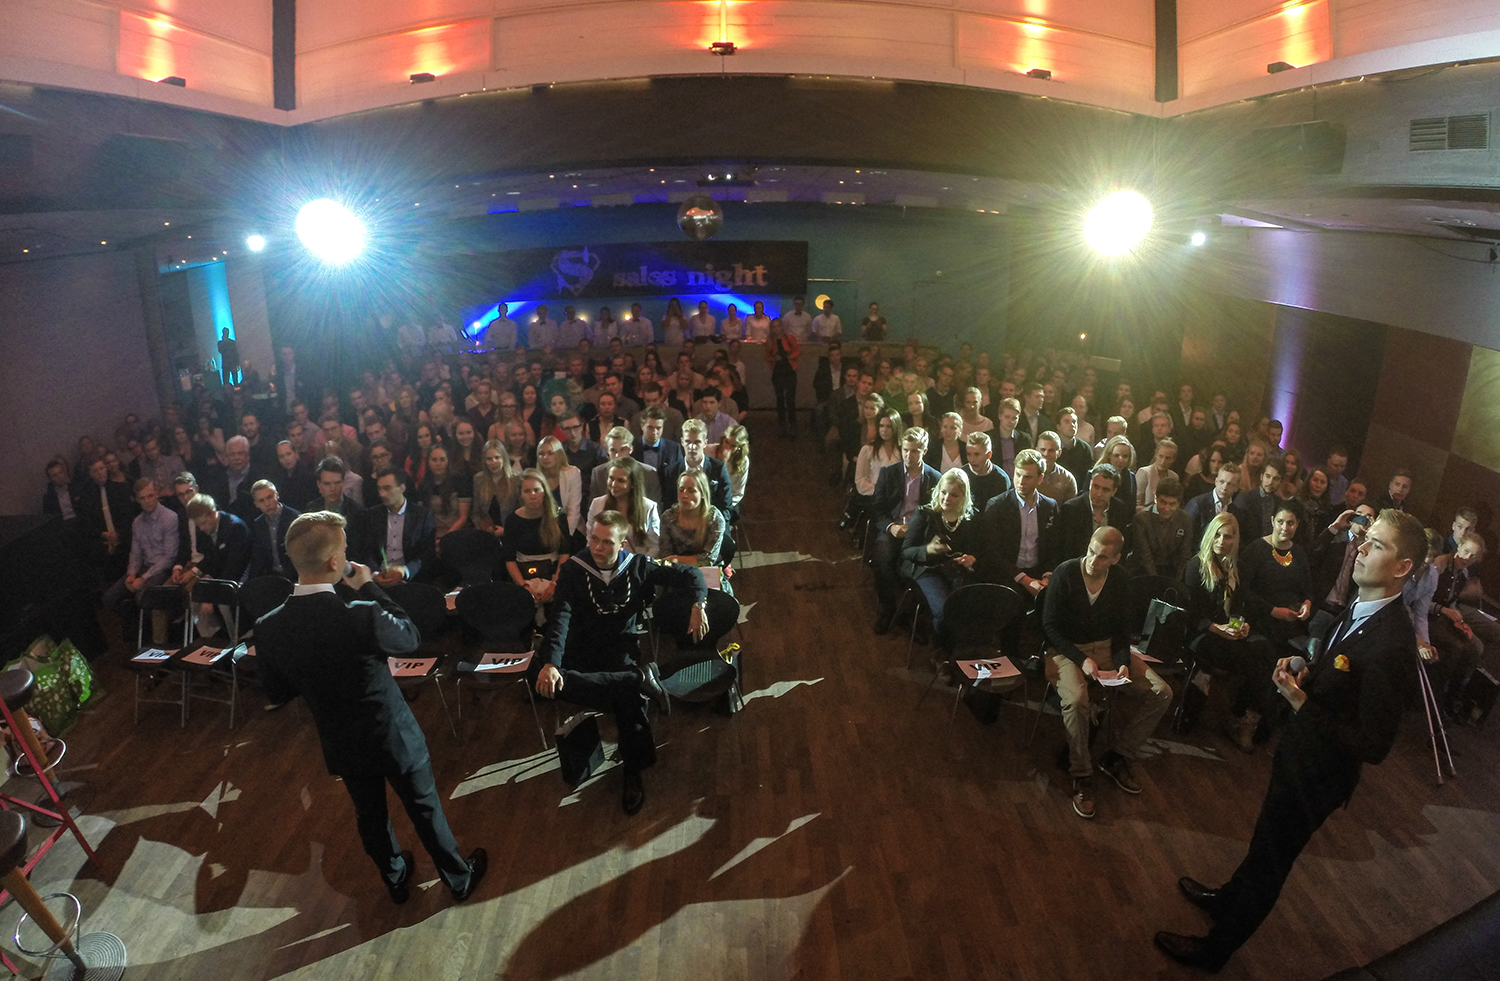 Sales Night 2014 - a sales-oriented event for 200+ business students in Helsinki.